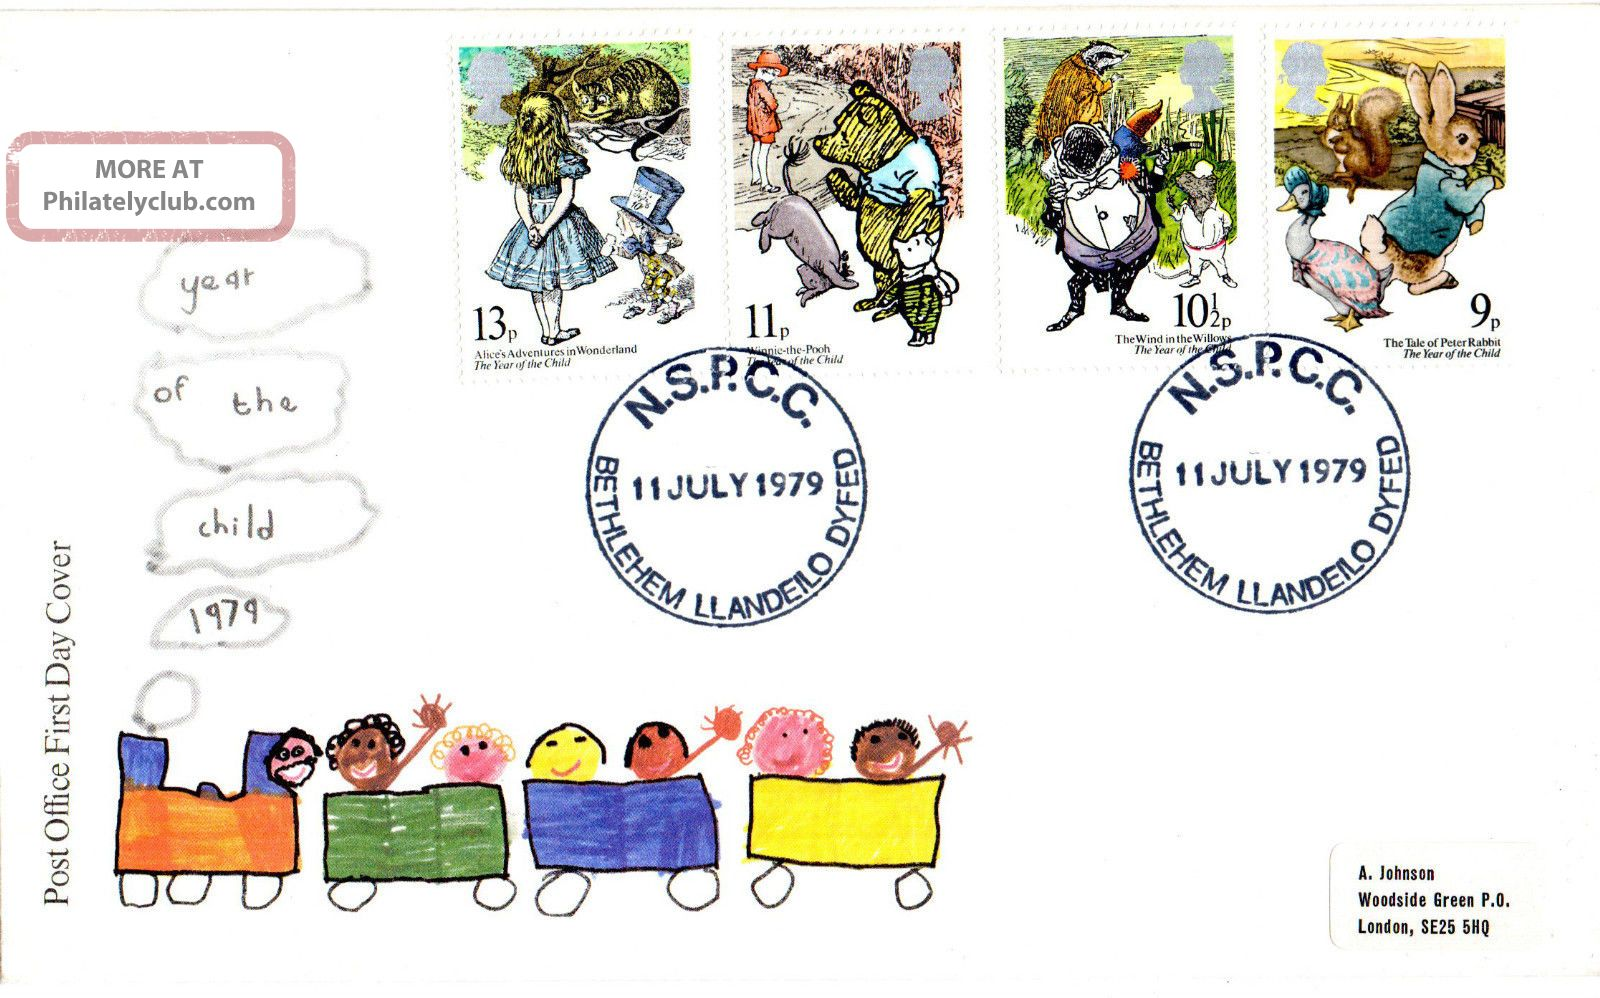 11 July 1979 International Year Of The Child Po Fdc Nspcc Bethlehem Shs Topical Stamps photo